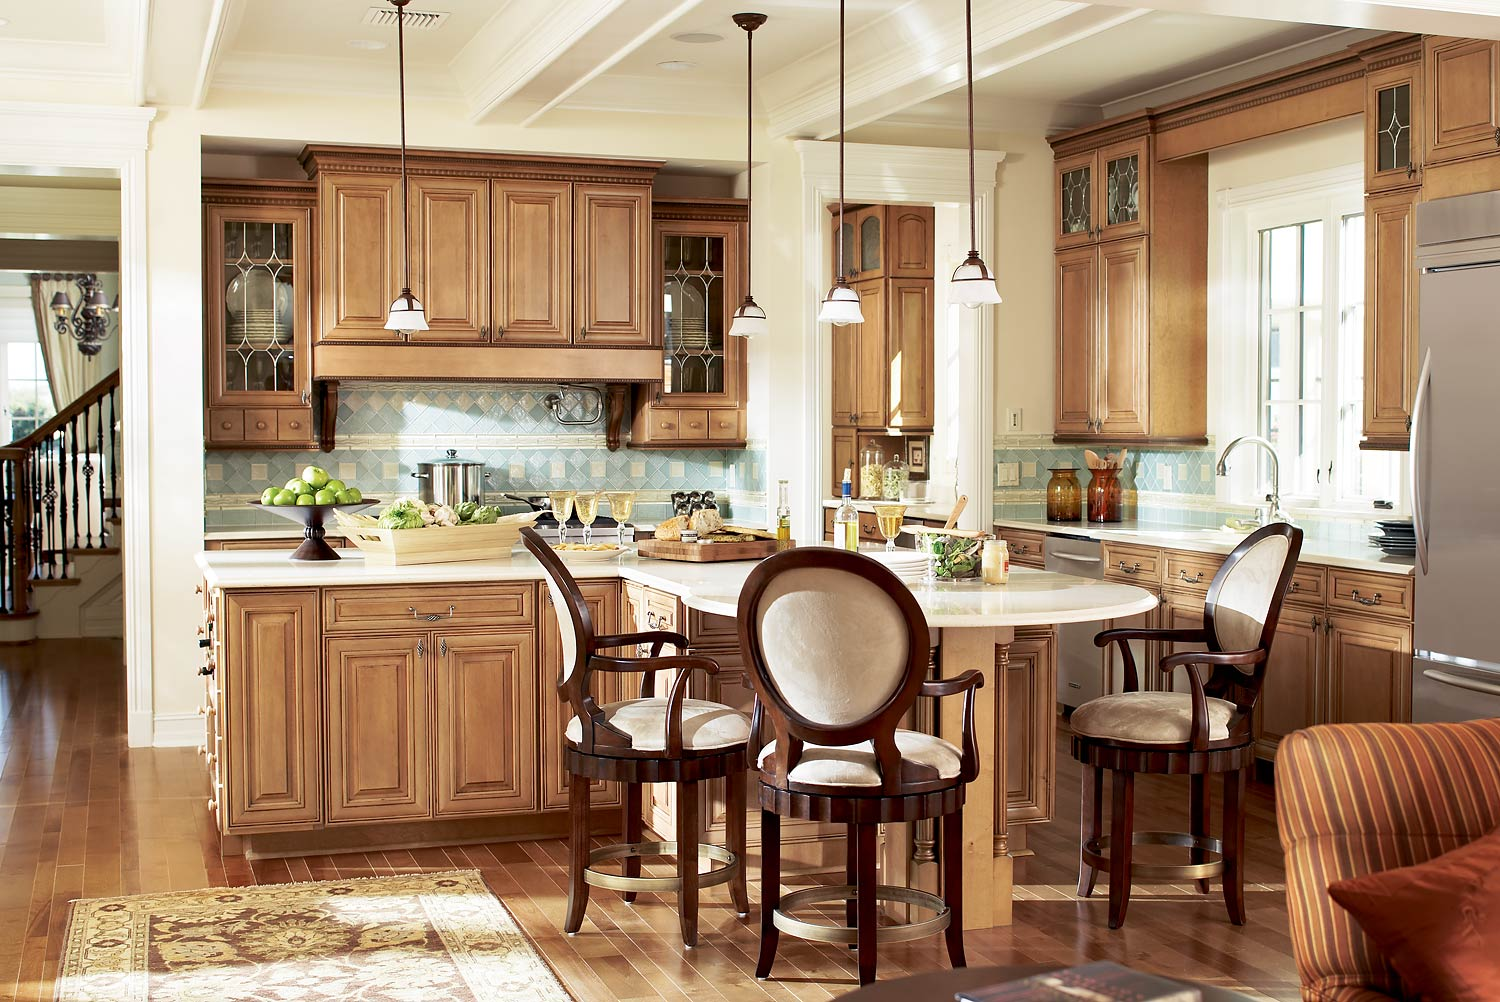 sierra-vista-maple-mocha-glaze-kitchen